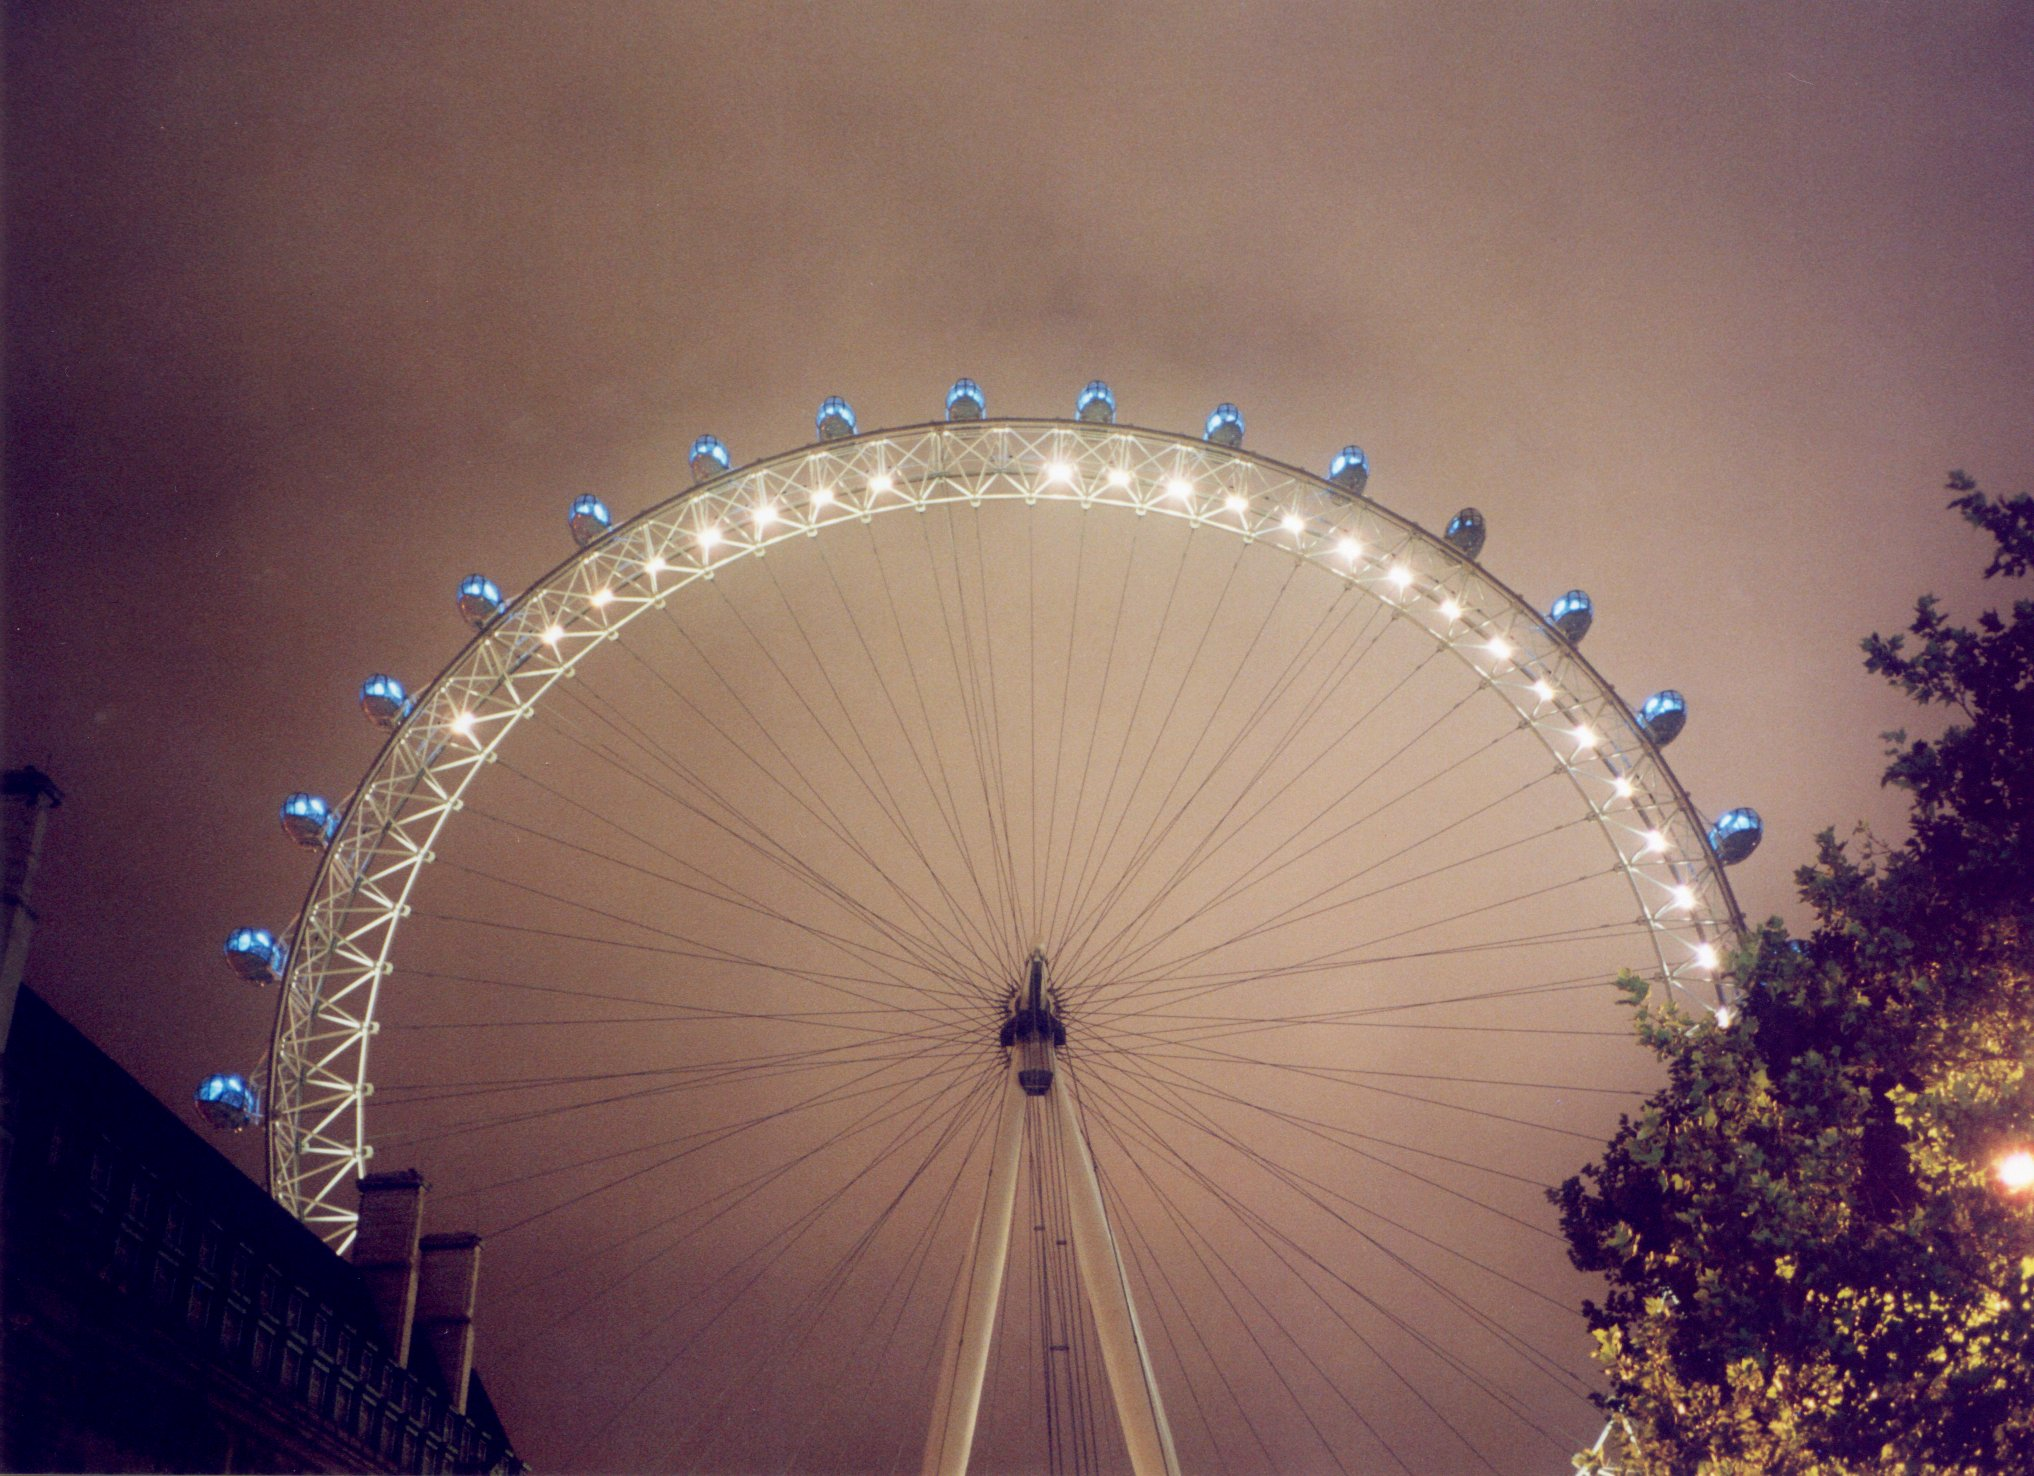 """London Eye Nacht"". Licensed under Creative Commons Attribution-Share Alike 3.0 via Wikimedia Commons - http://commons.wikimedia.org/wiki/File:London_Eye_Nacht.jpg#mediaviewer/File:London_Eye_Nacht.jpg"